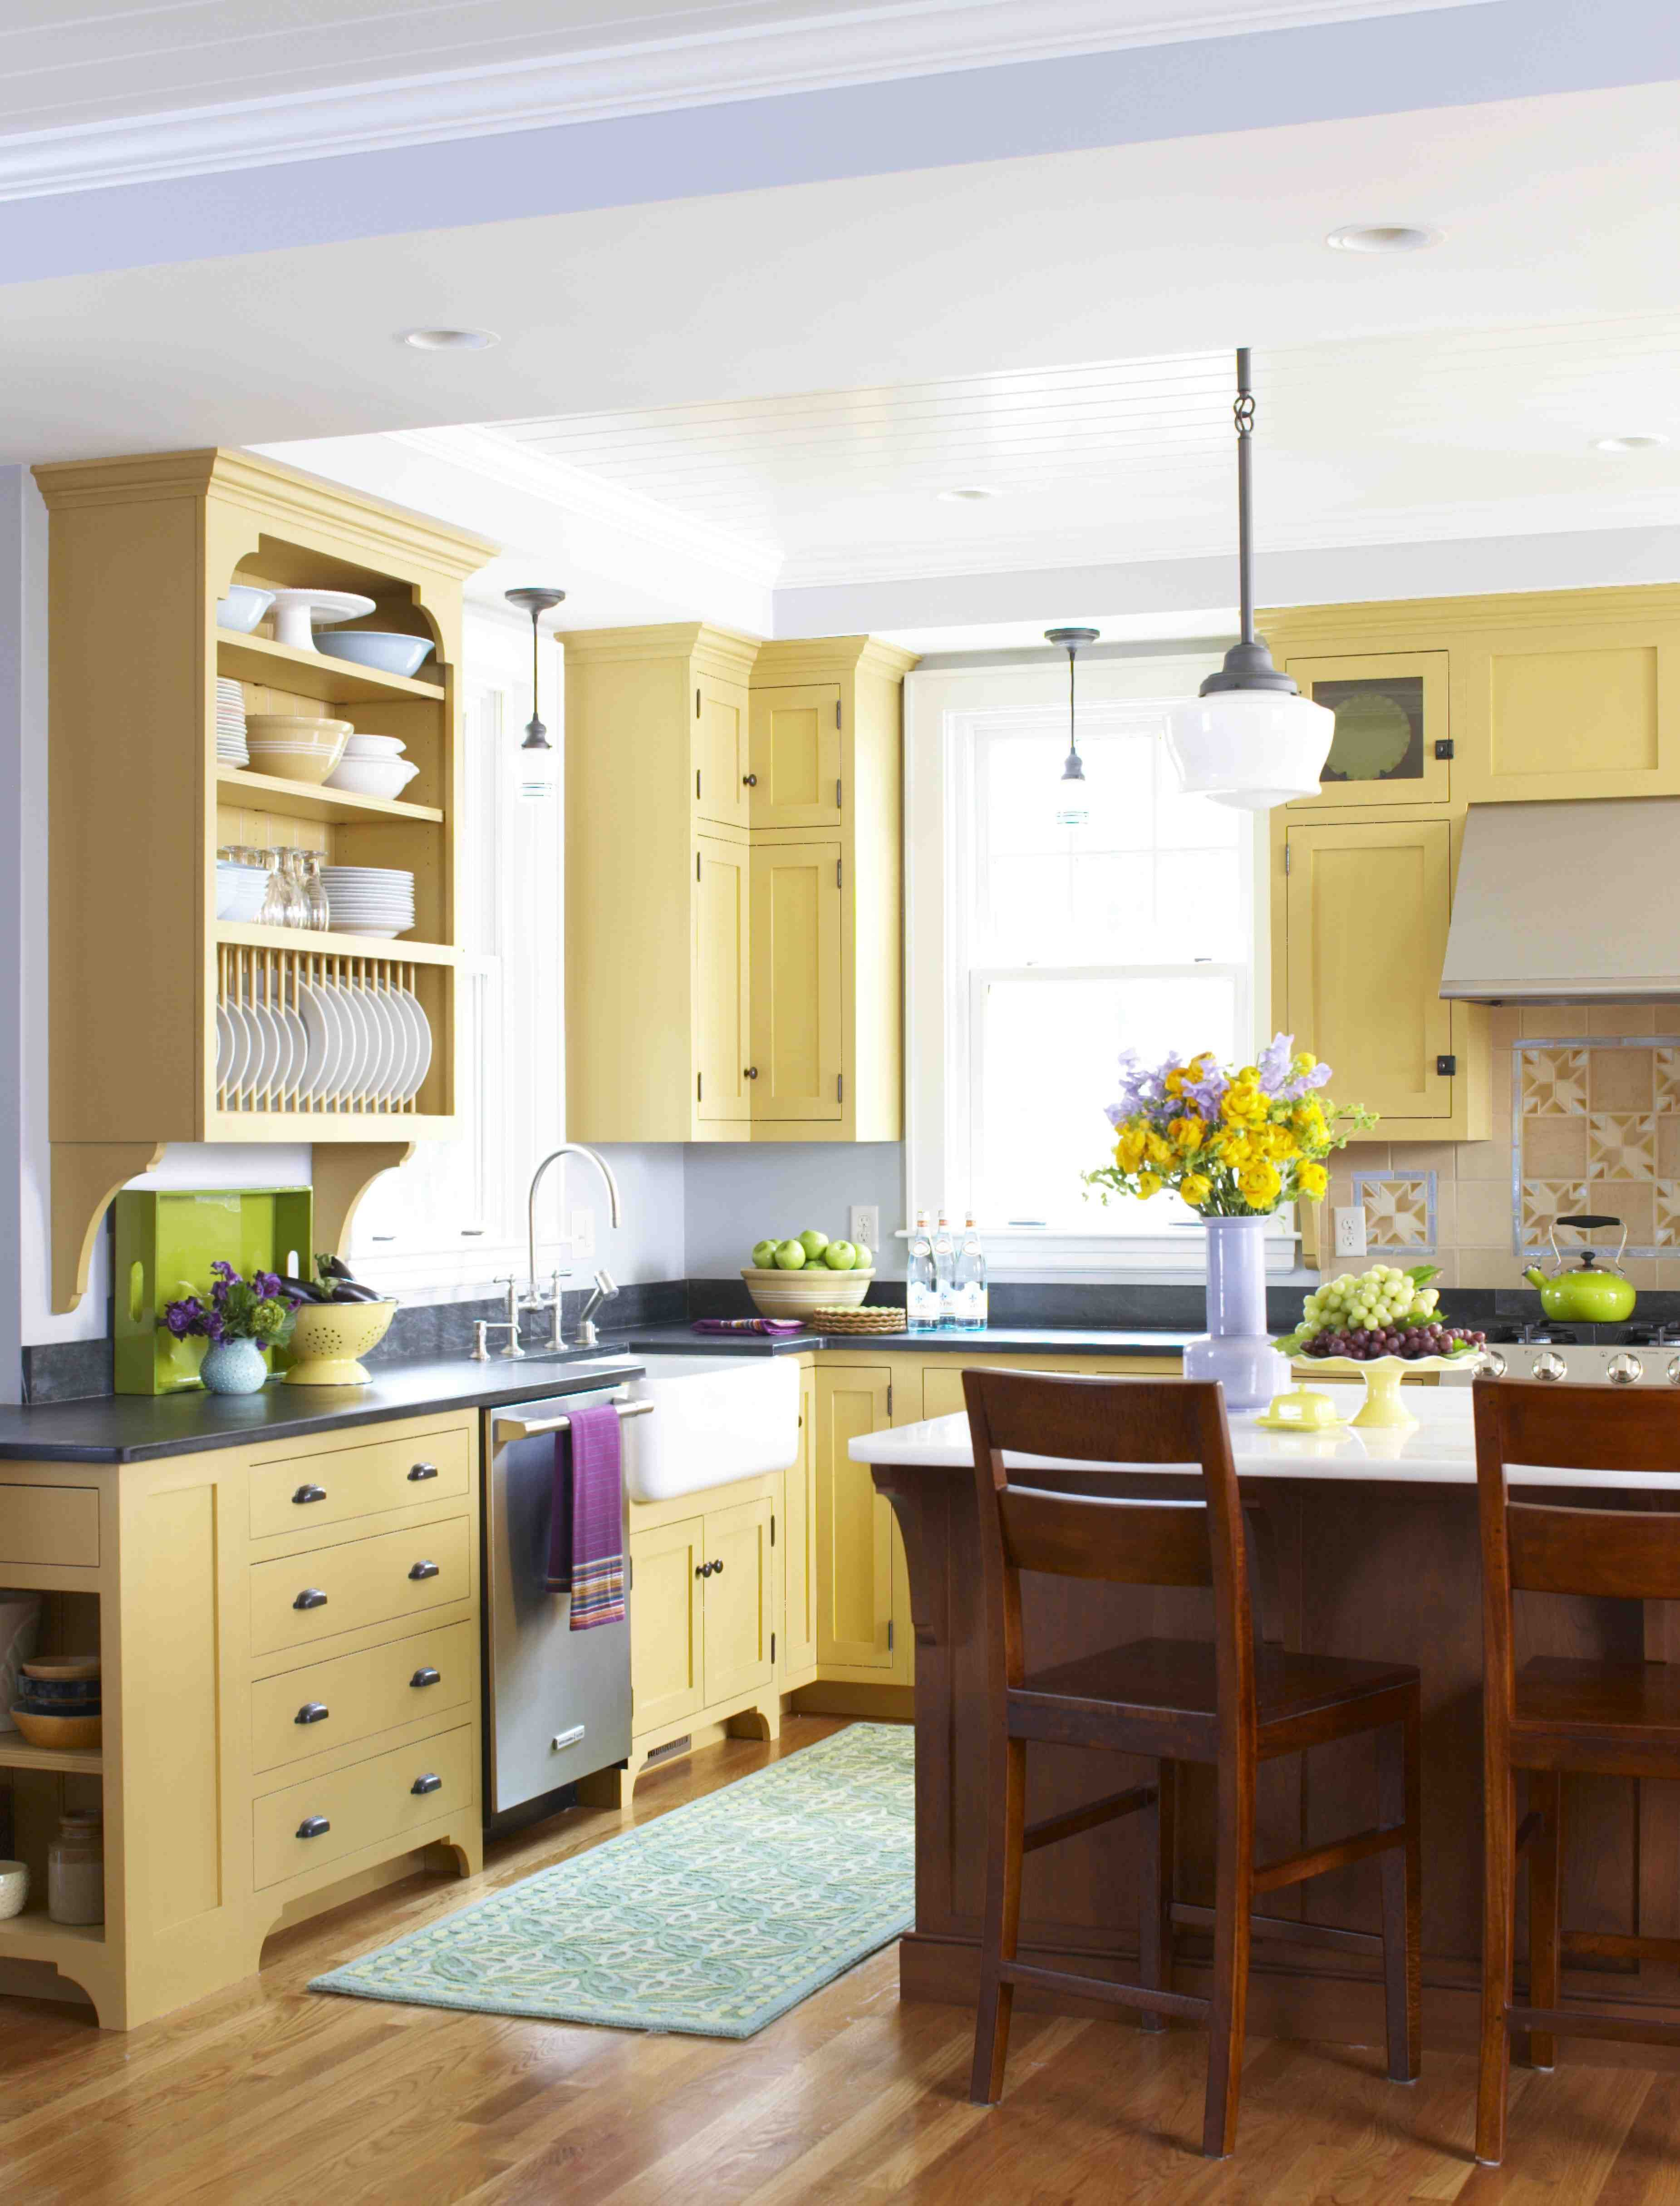 Style Archive—Mellow Yellow Kitchen | Kitchens, Woods and Yellow ...